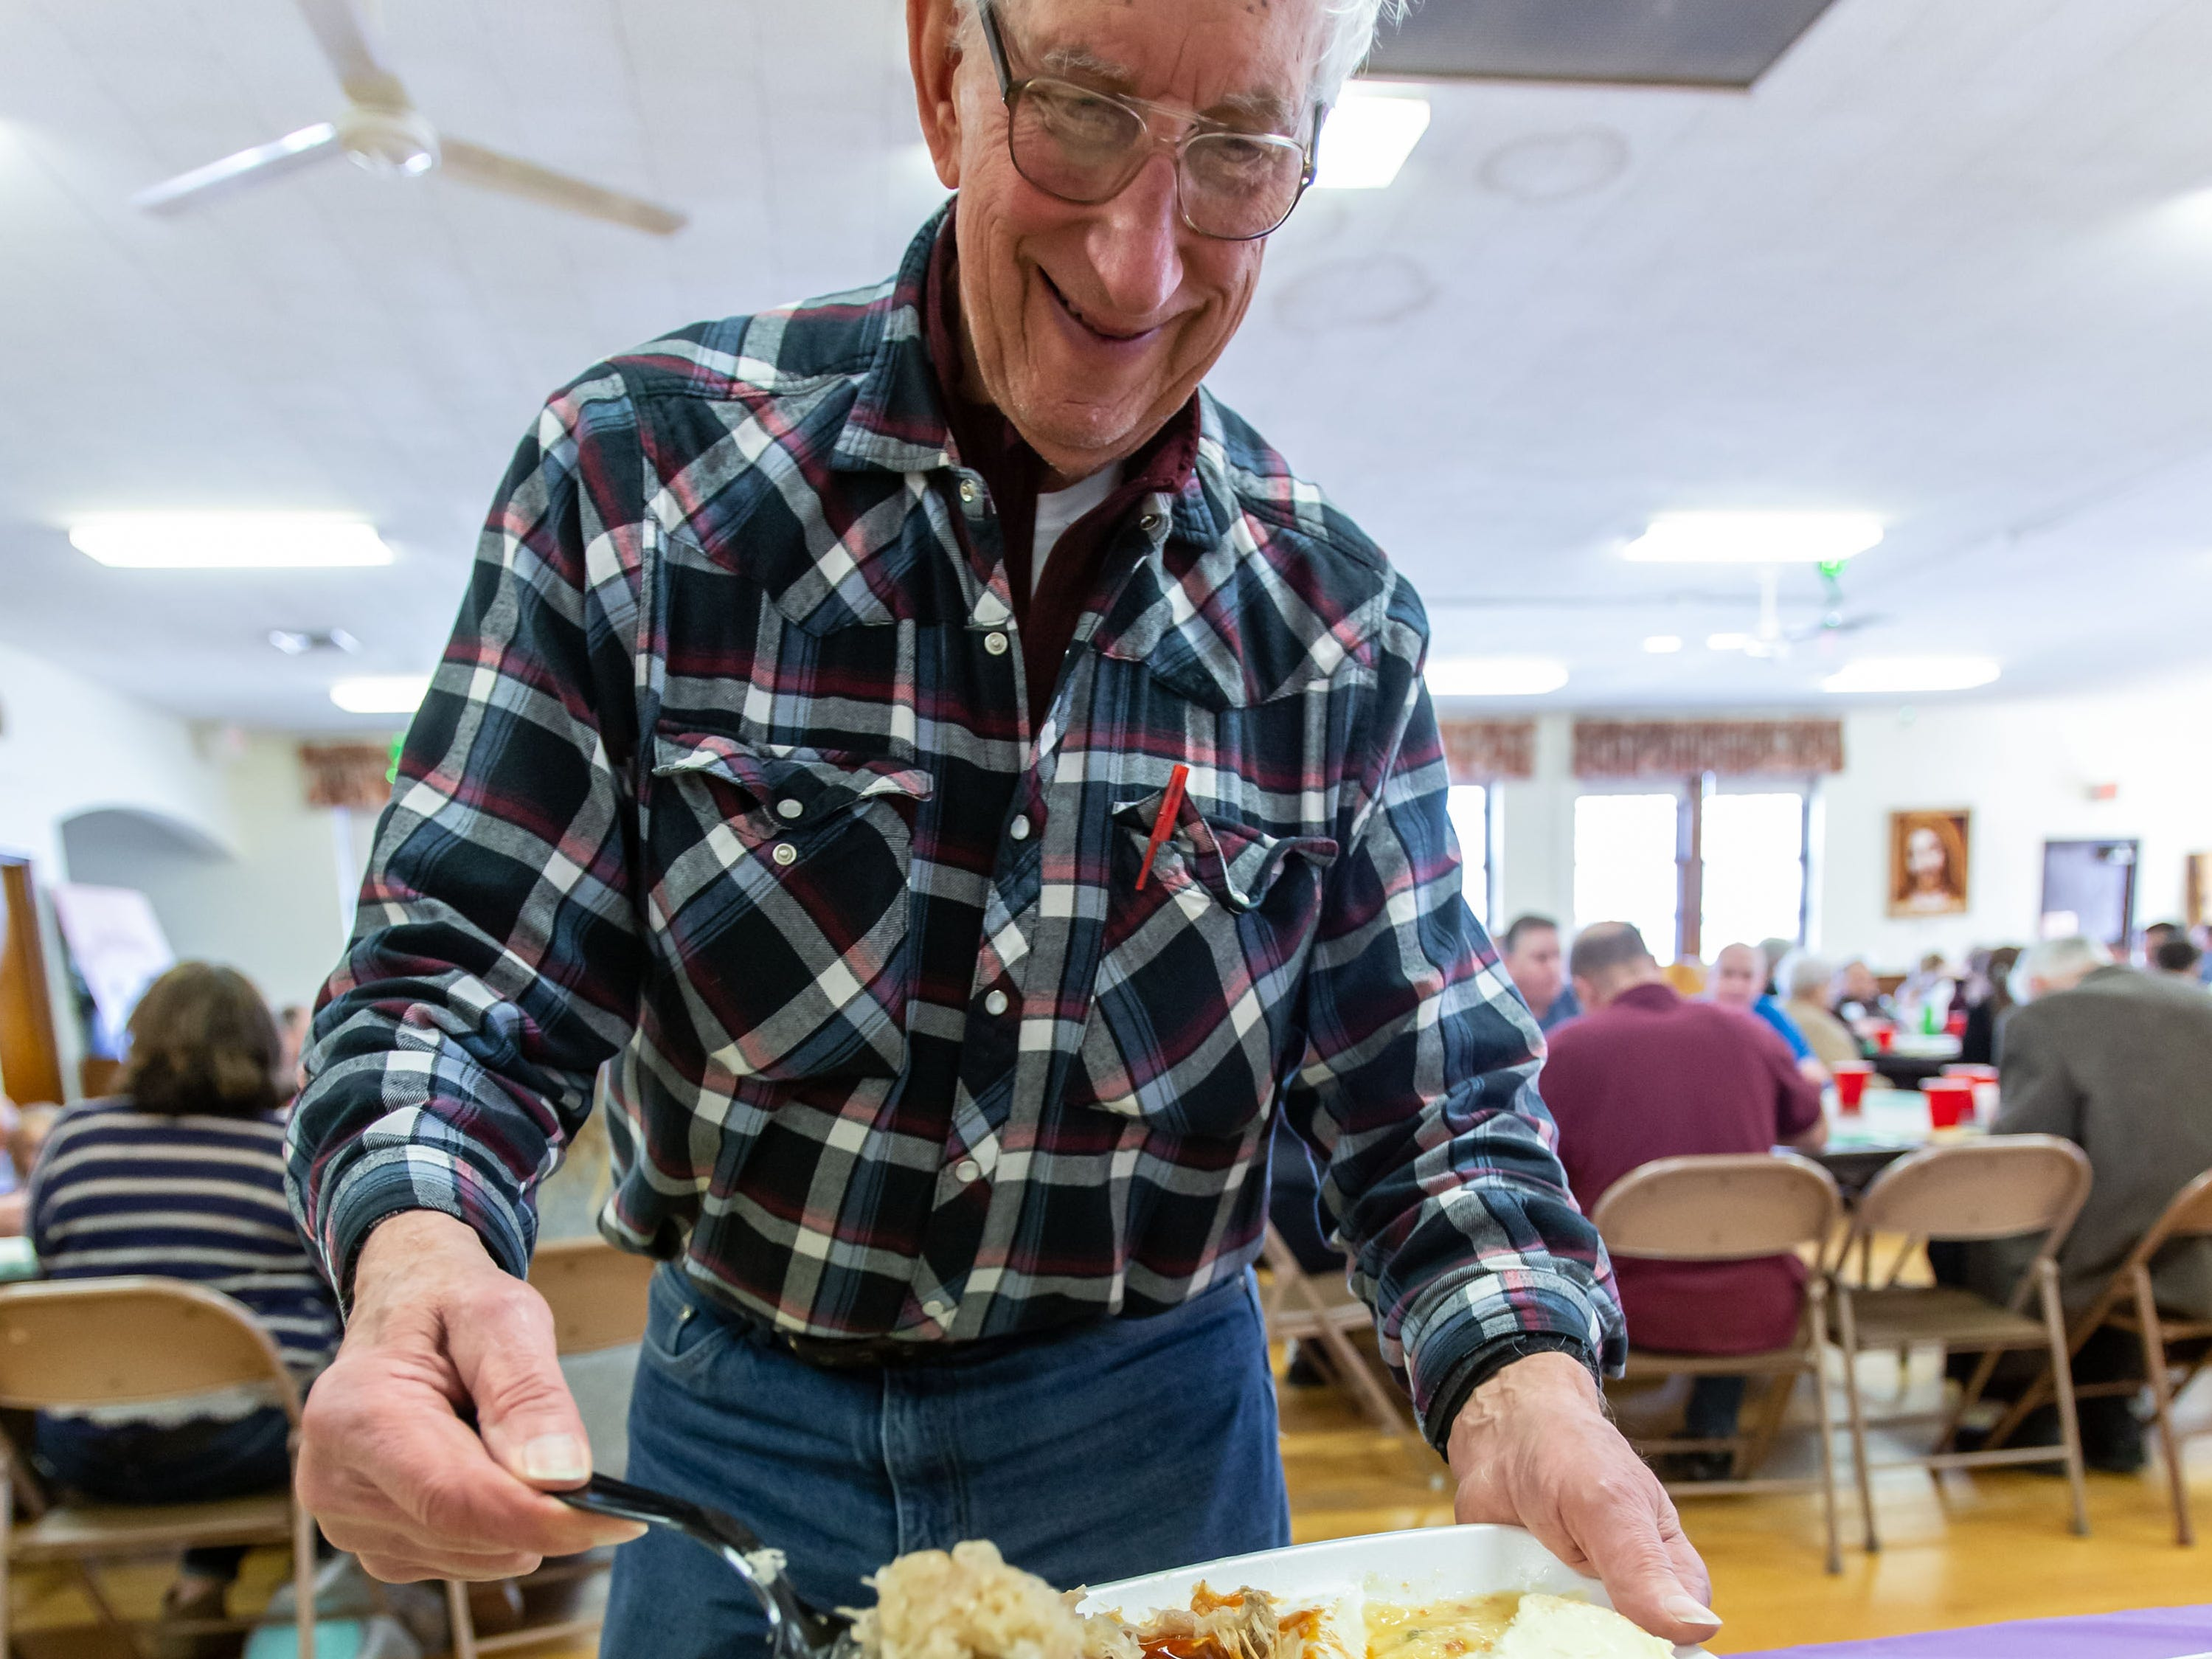 Roger Johnson of Cedarburg fills a plate during the Mardi Gras Pig Roast and pie auction at Immanuel Lutheran Church in Cedarburg on Sunday, March 3, 2019.